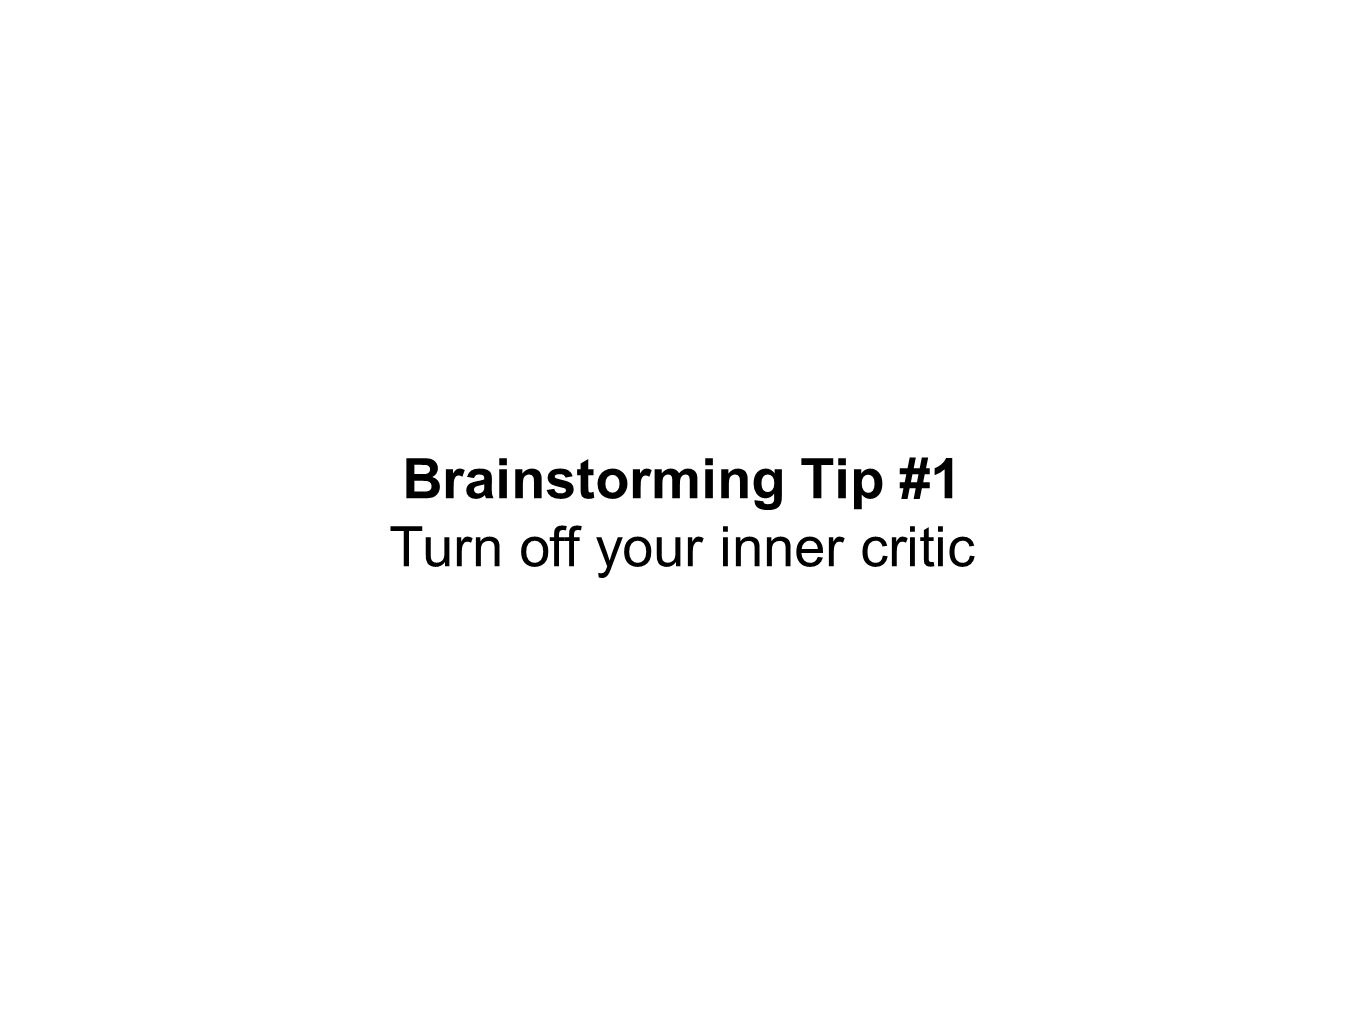 Brainstorming Tip #1 Turn off your inner critic